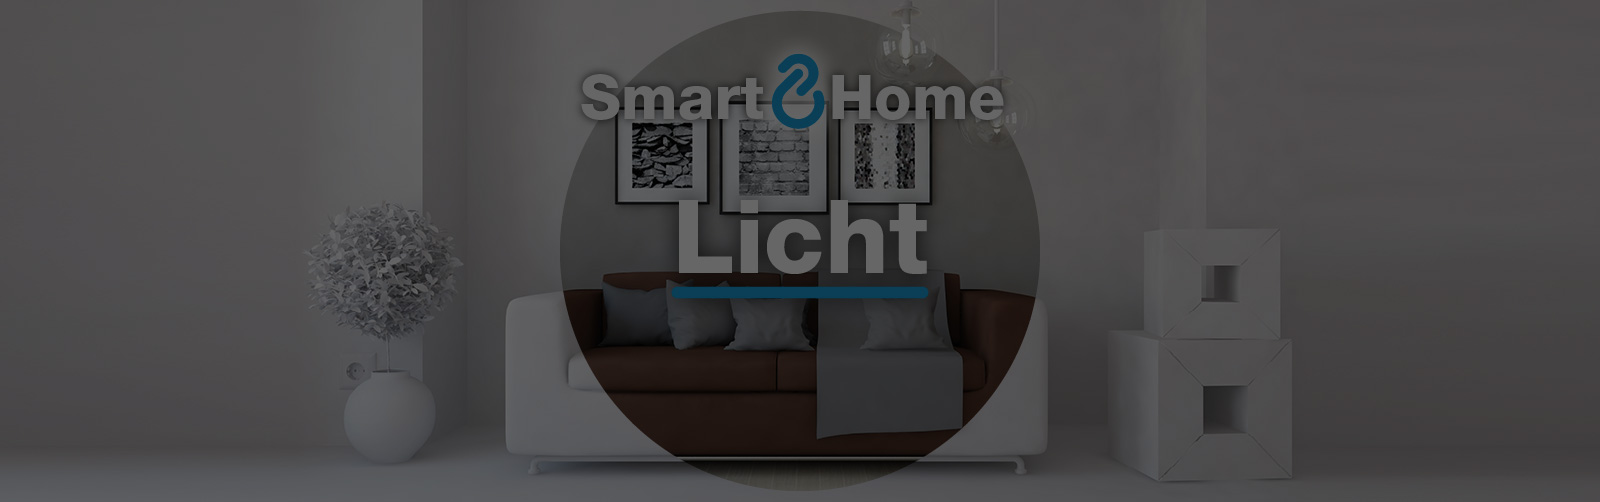 smart home | licht | electronicpartner | electronicpartner deutschland